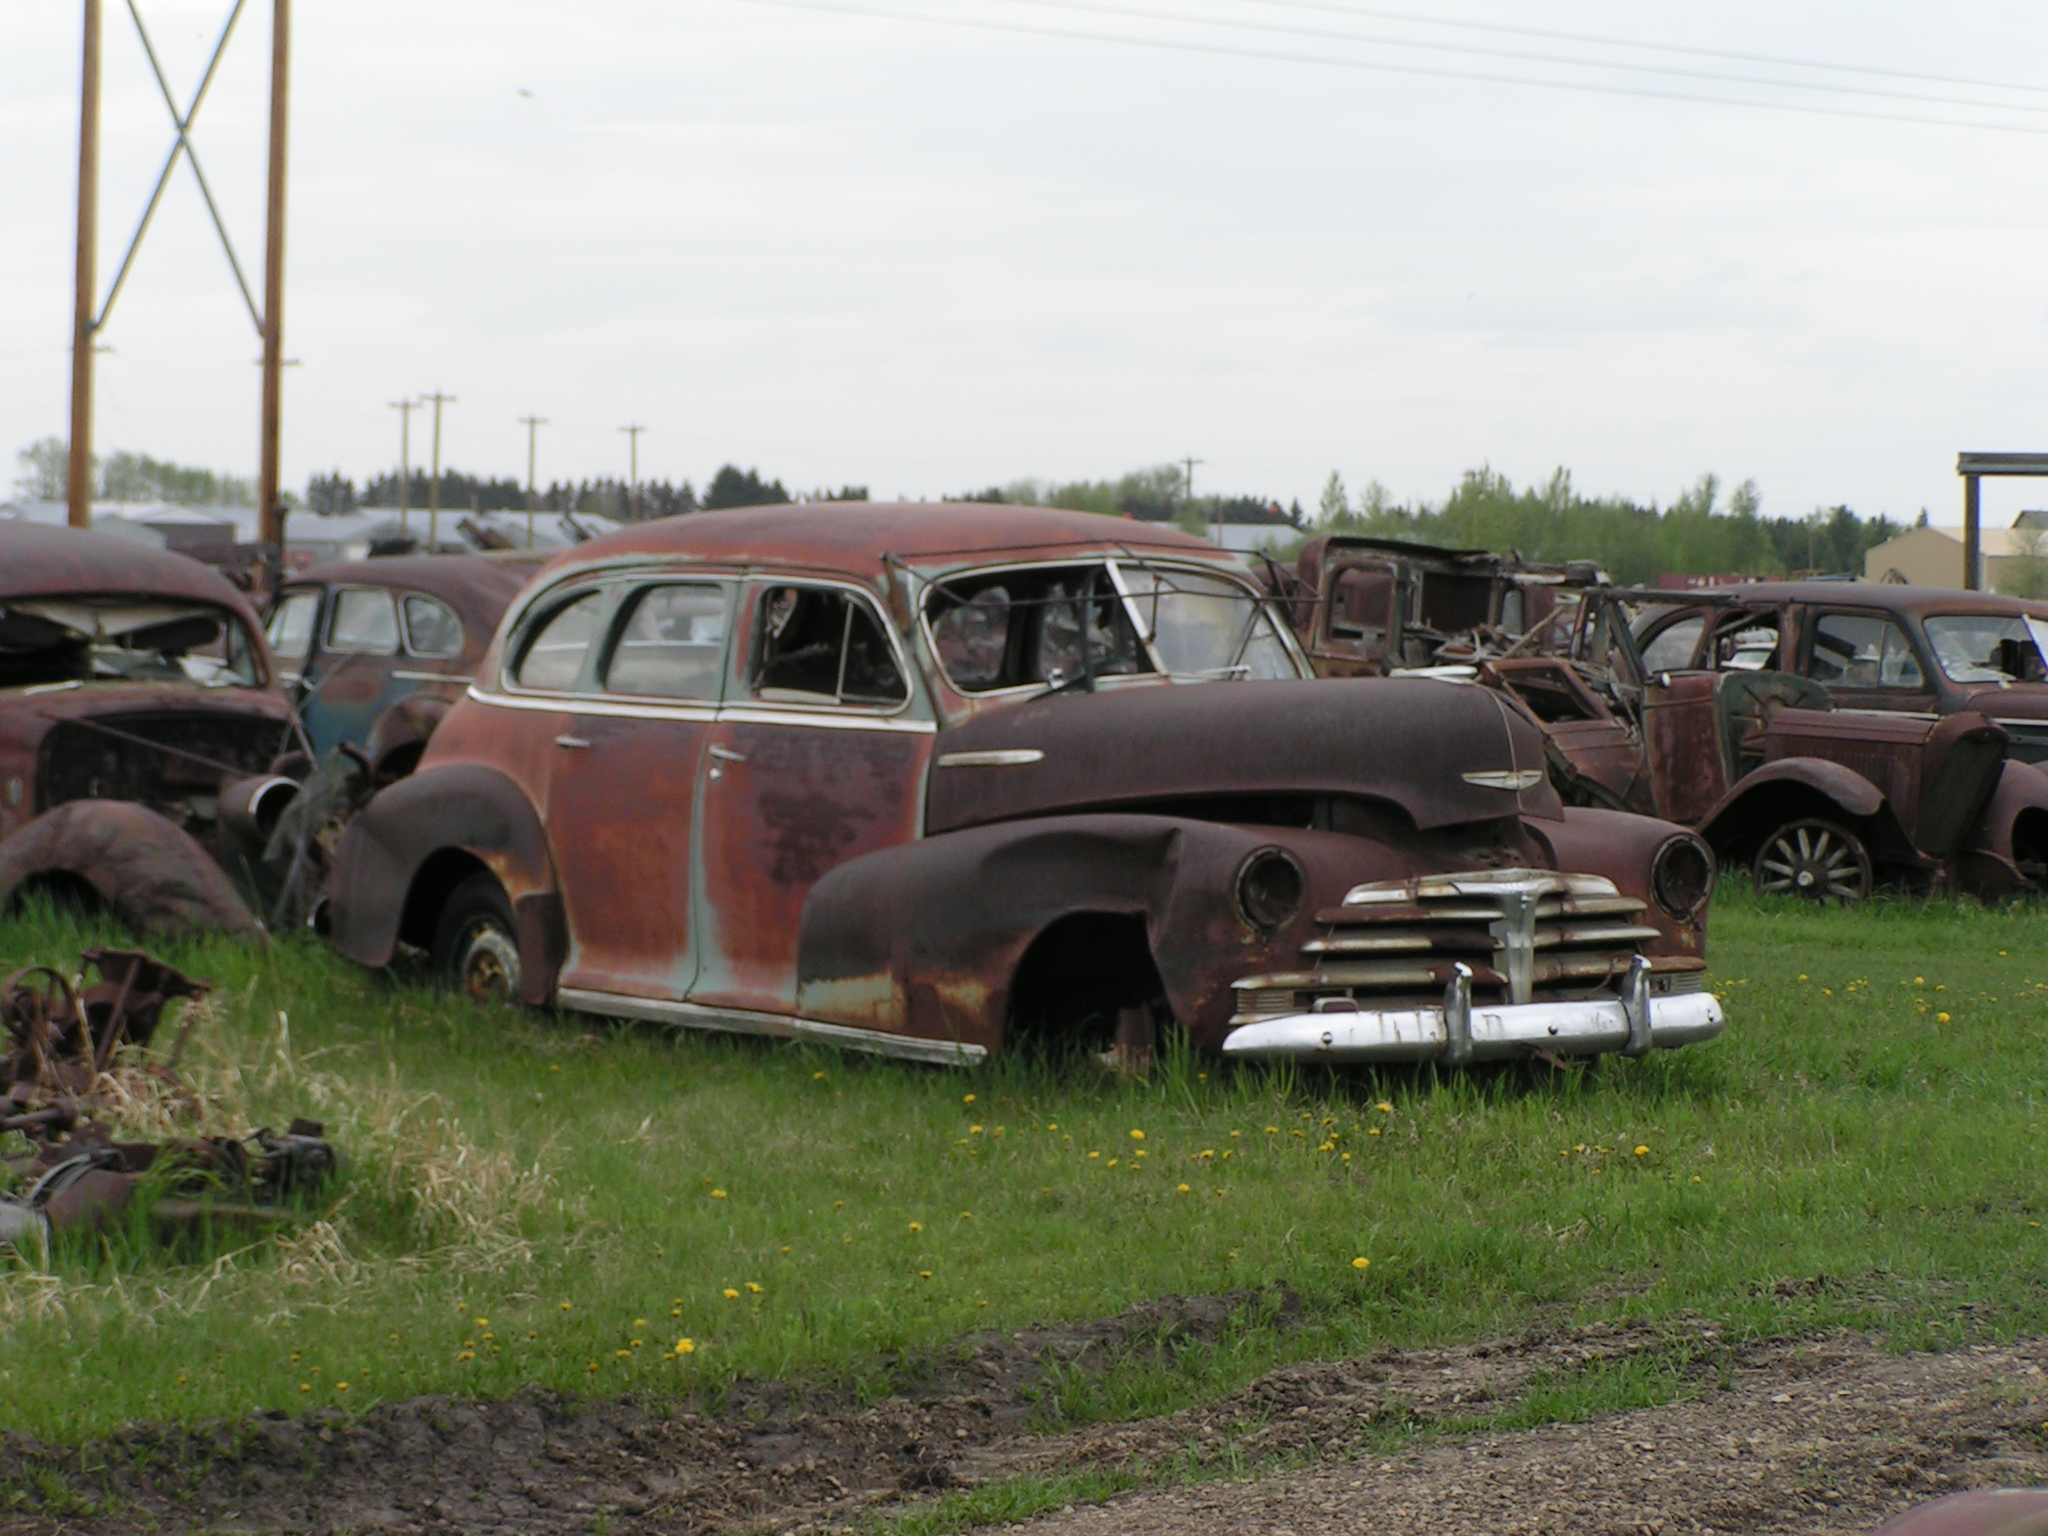 File:Rusting Vintage and Classic Cars (2551898241).jpg - Wikimedia ...